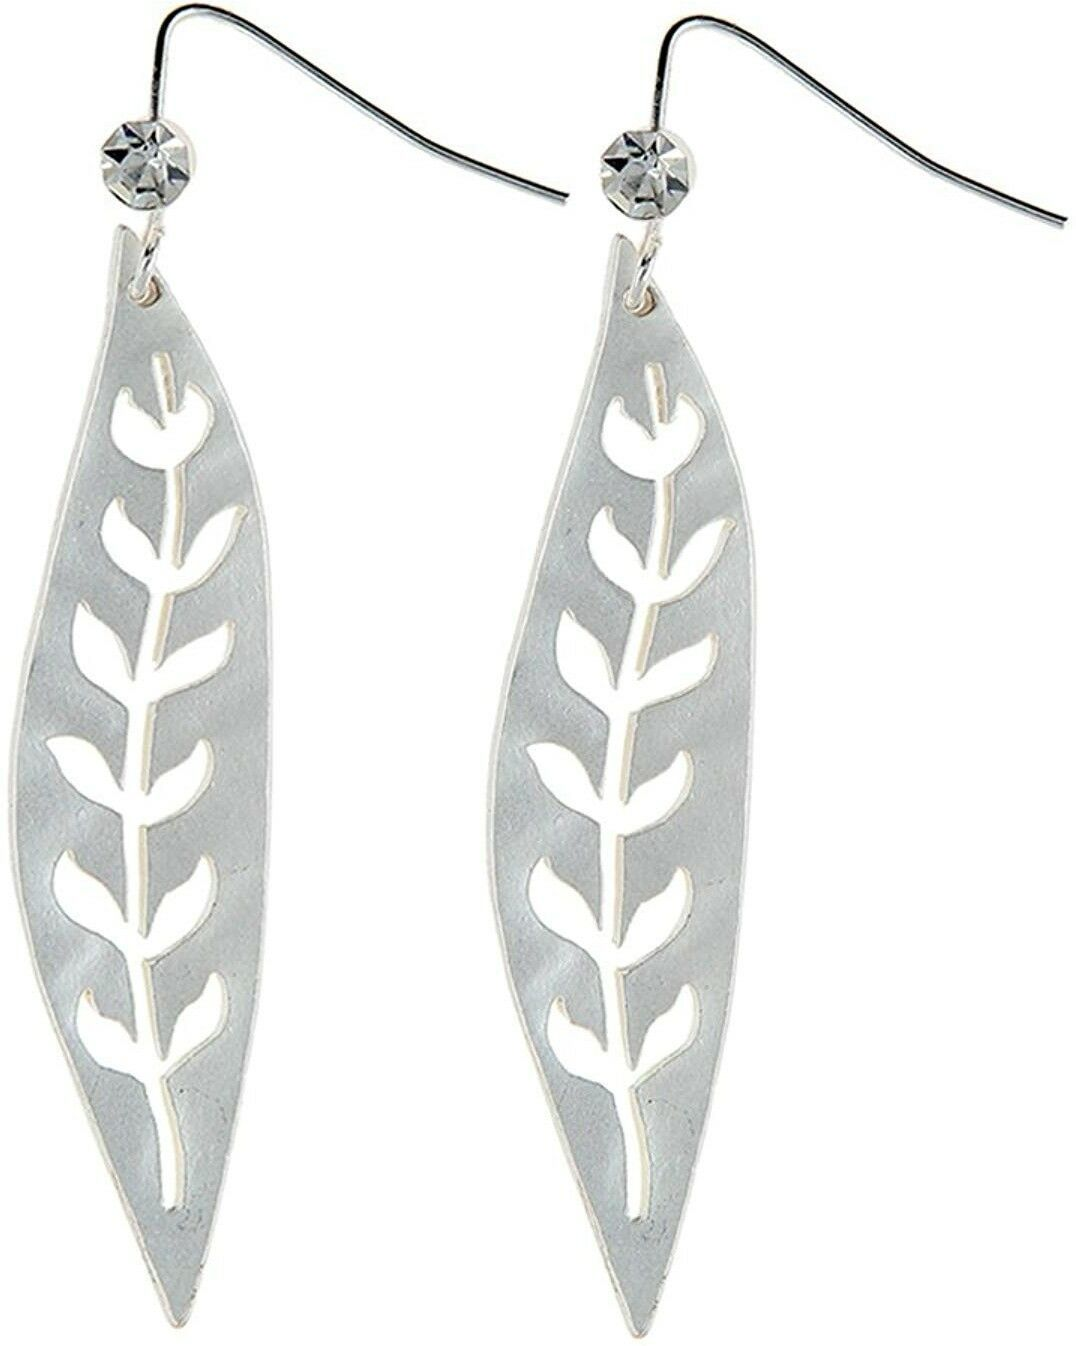 Primary image for RAIN 'Leaf' Cubic Zirconia Silver-Tone Fish Hook Dangle Earrings